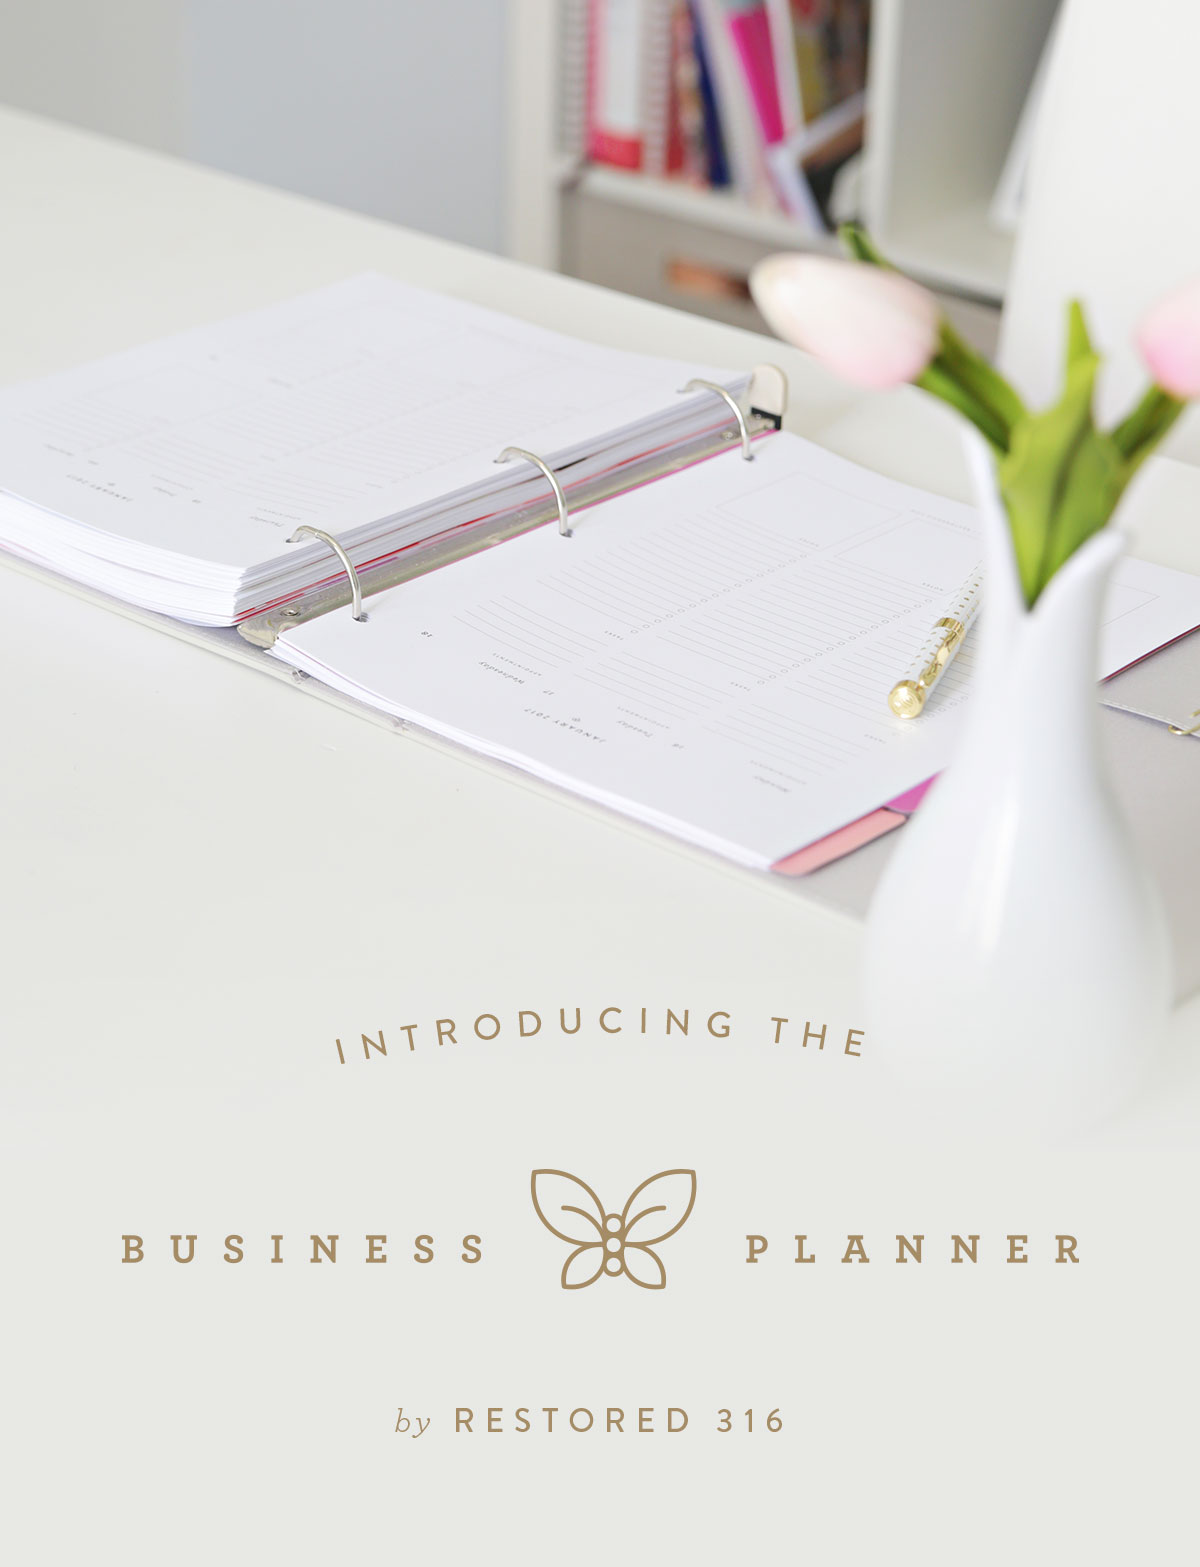 Restored 316 Business Planner